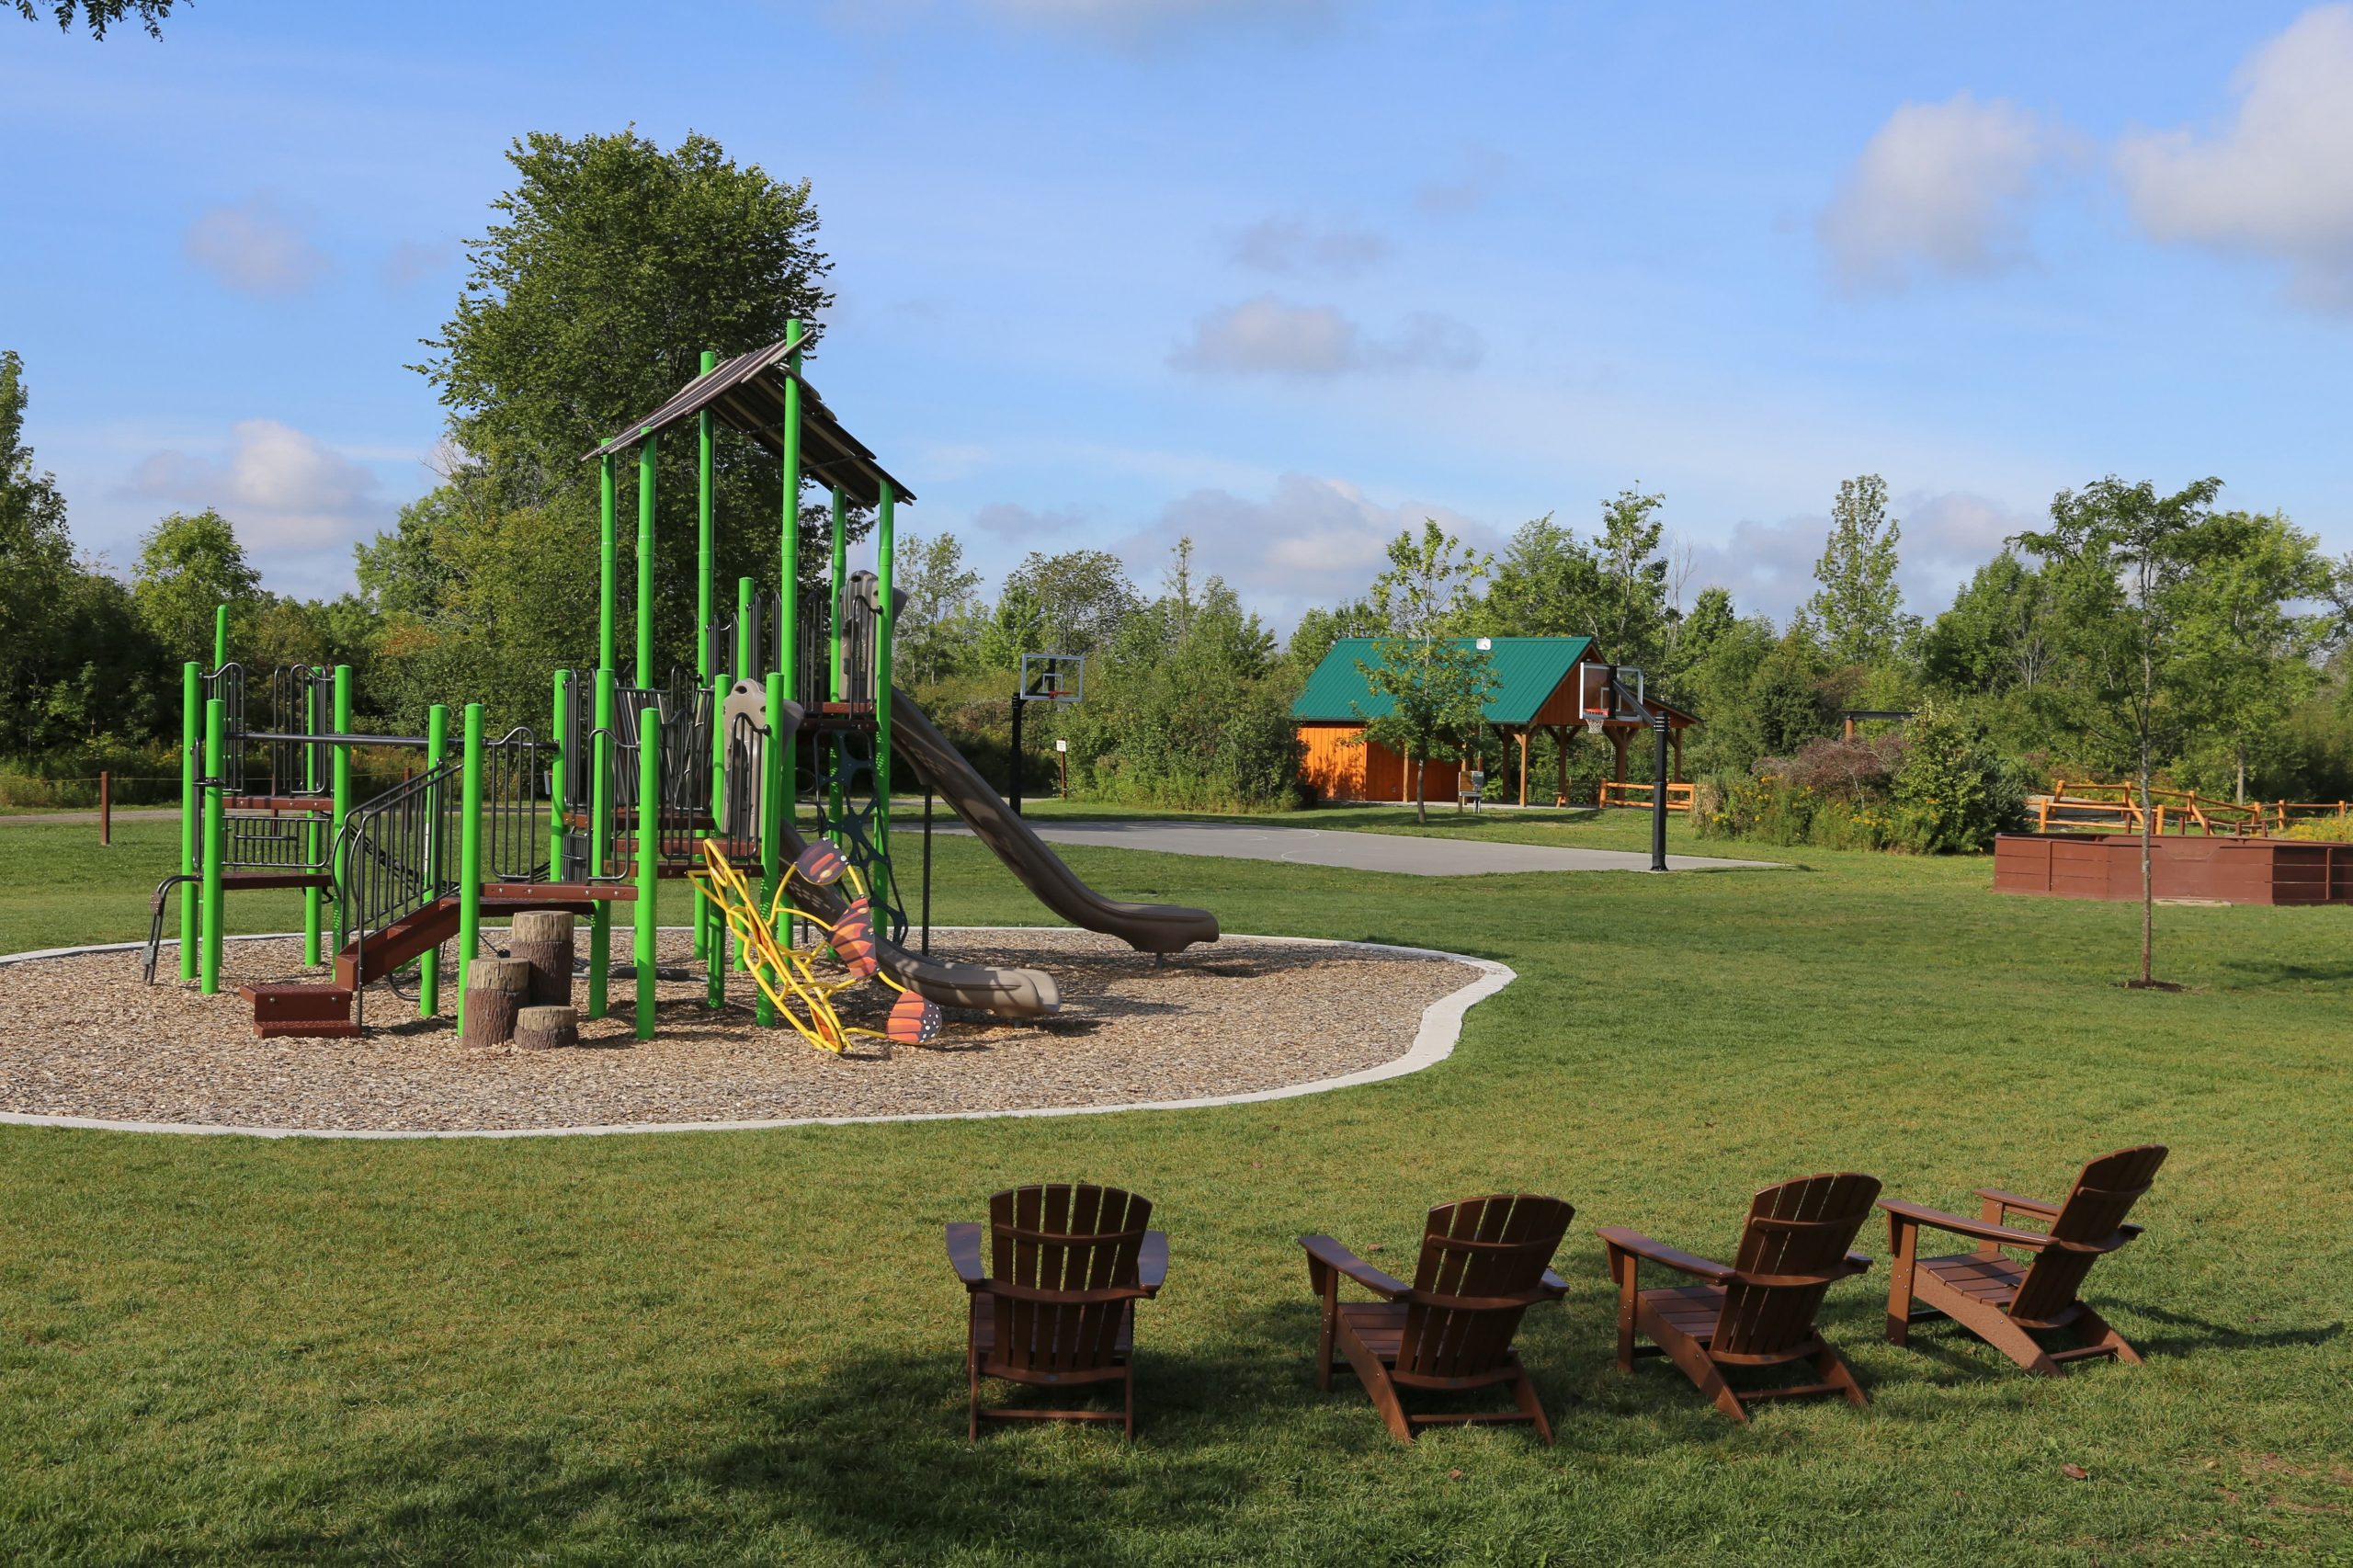 playground structure and Adirondack chairs